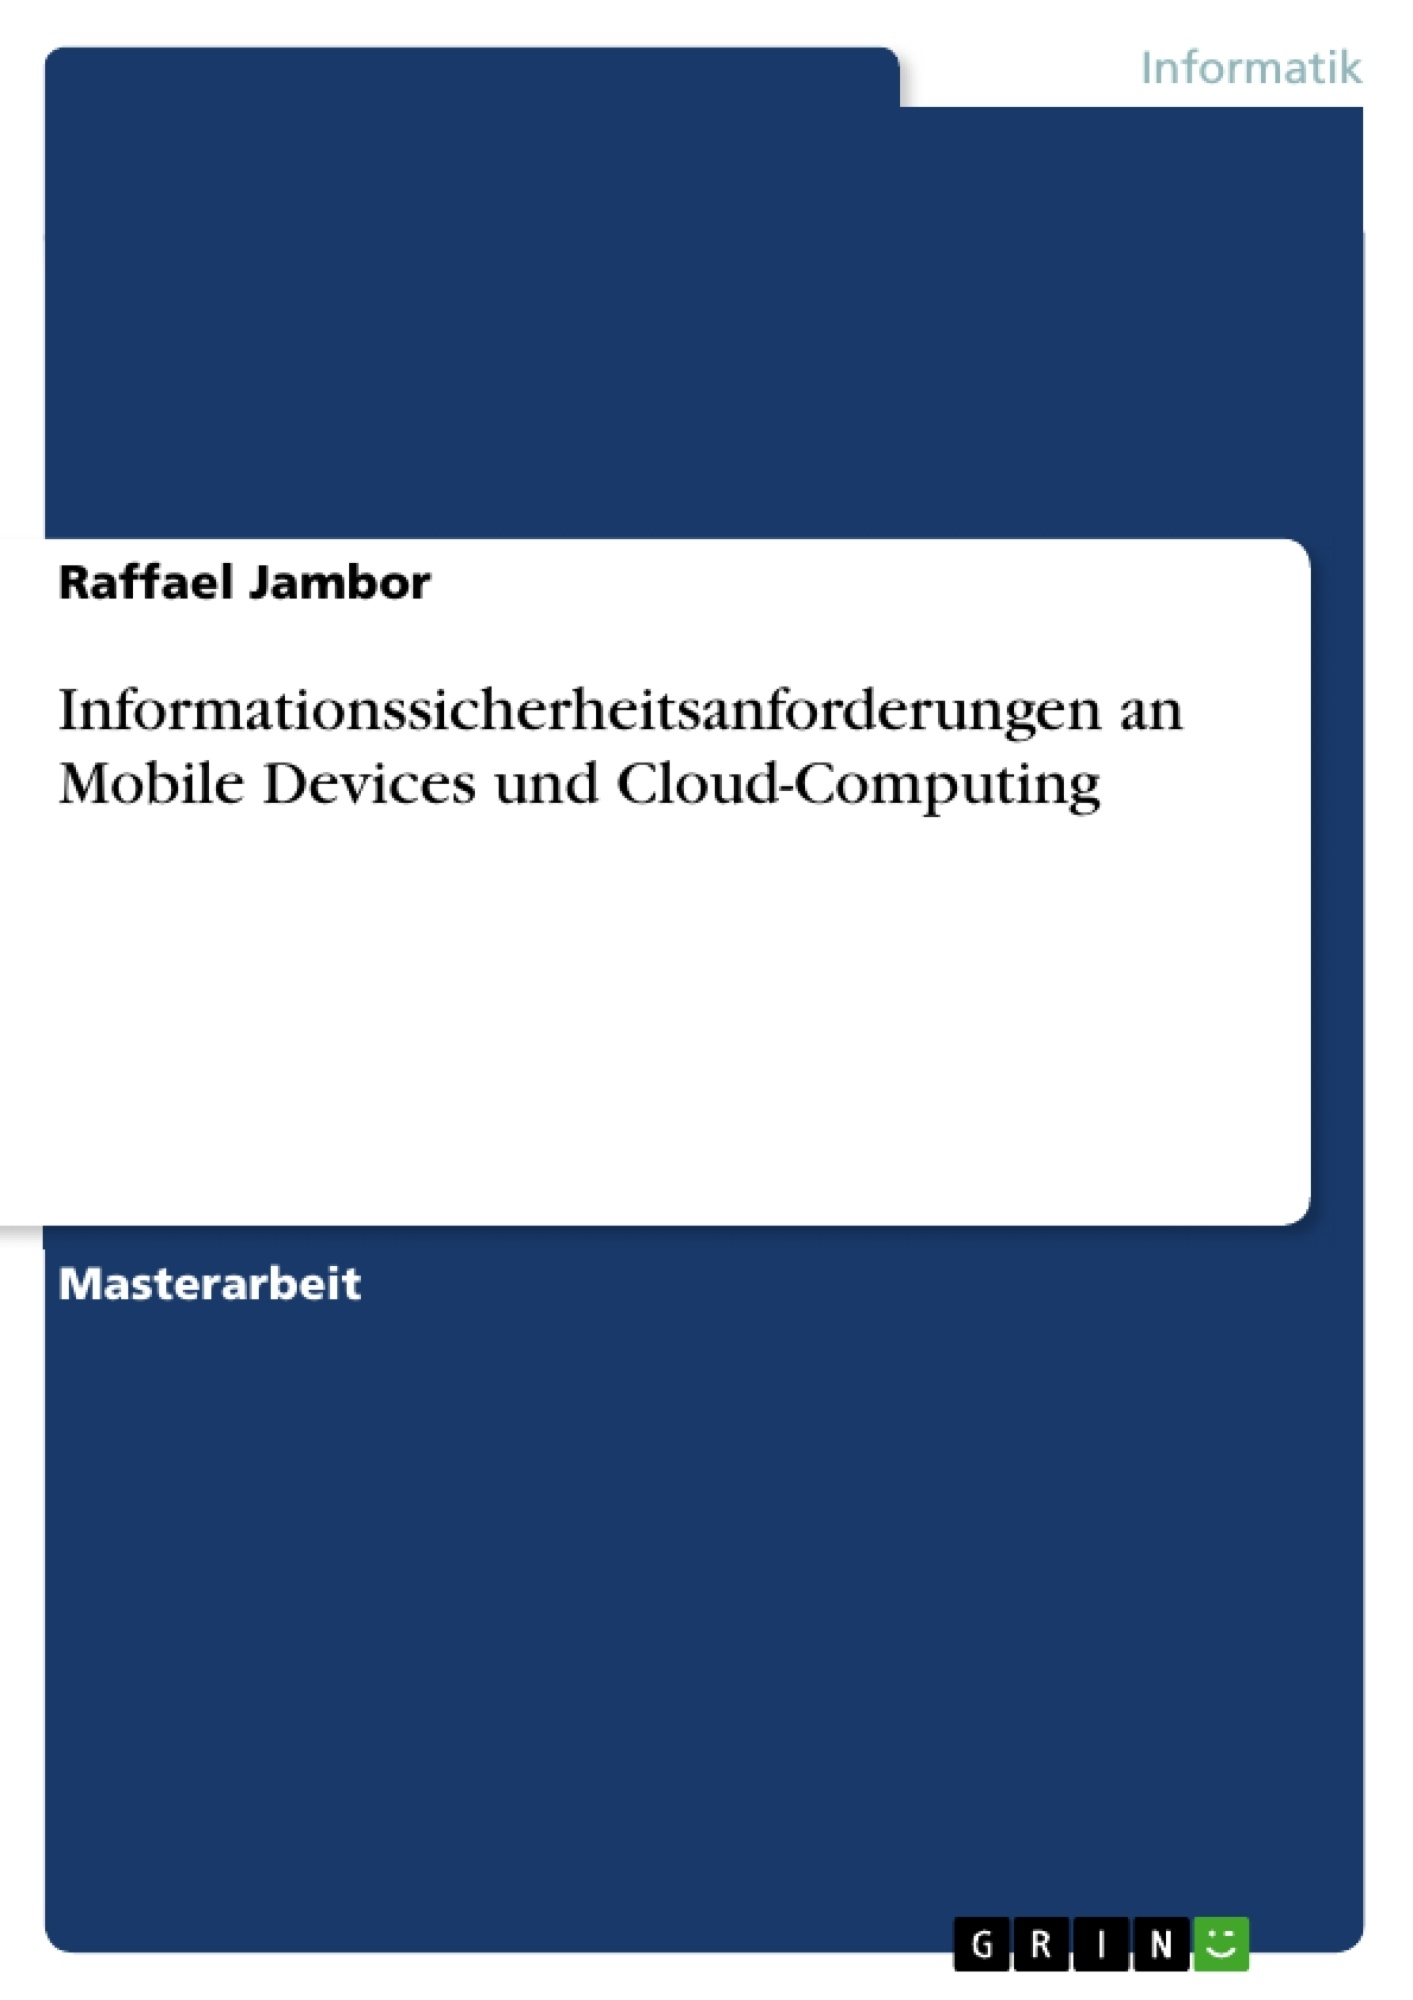 Titel: Informationssicherheitsanforderungen an Mobile Devices und Cloud-Computing